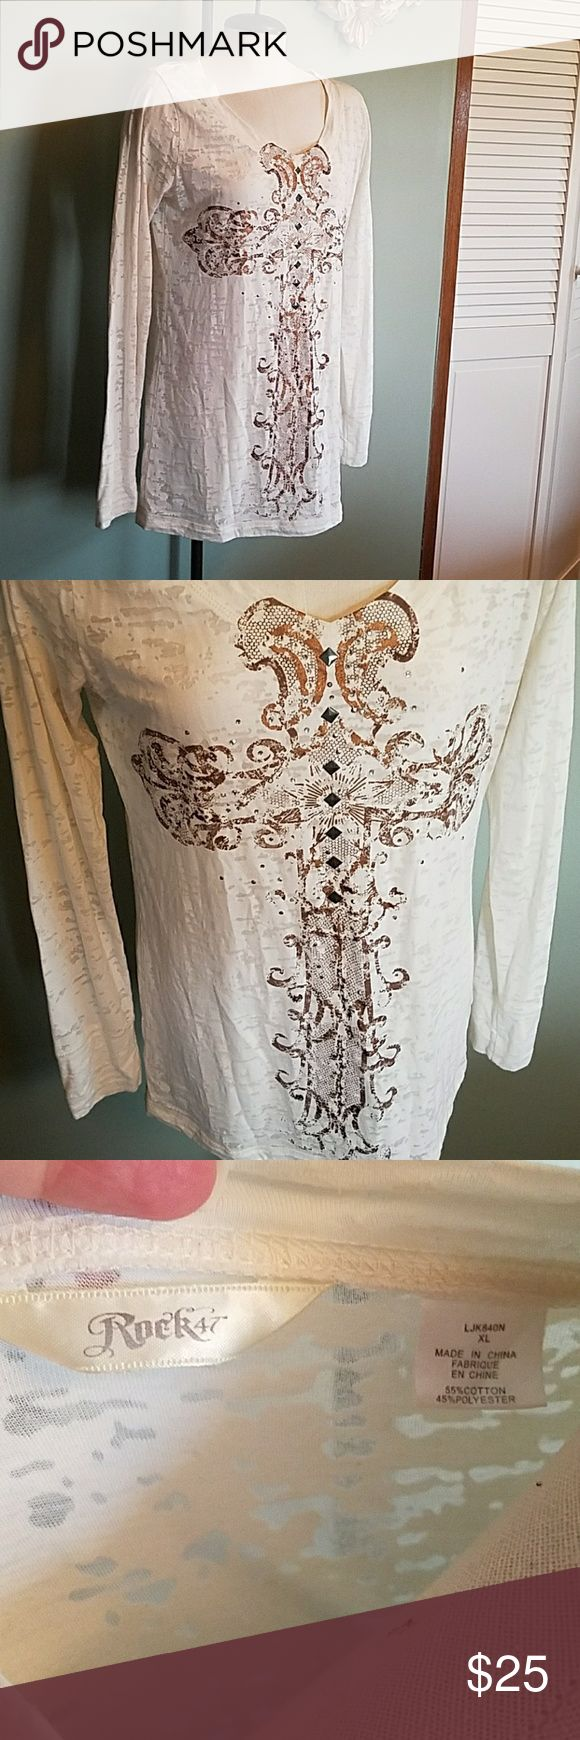 Rock 47 Long Sleeve Burn Out Shirt XL This top is in like new condition.. worn once.. no missing stones.. perfect for cool country night concerts coming up! Bundle for discount!   *O* Rock 47 Tops Tees - Long Sleeve